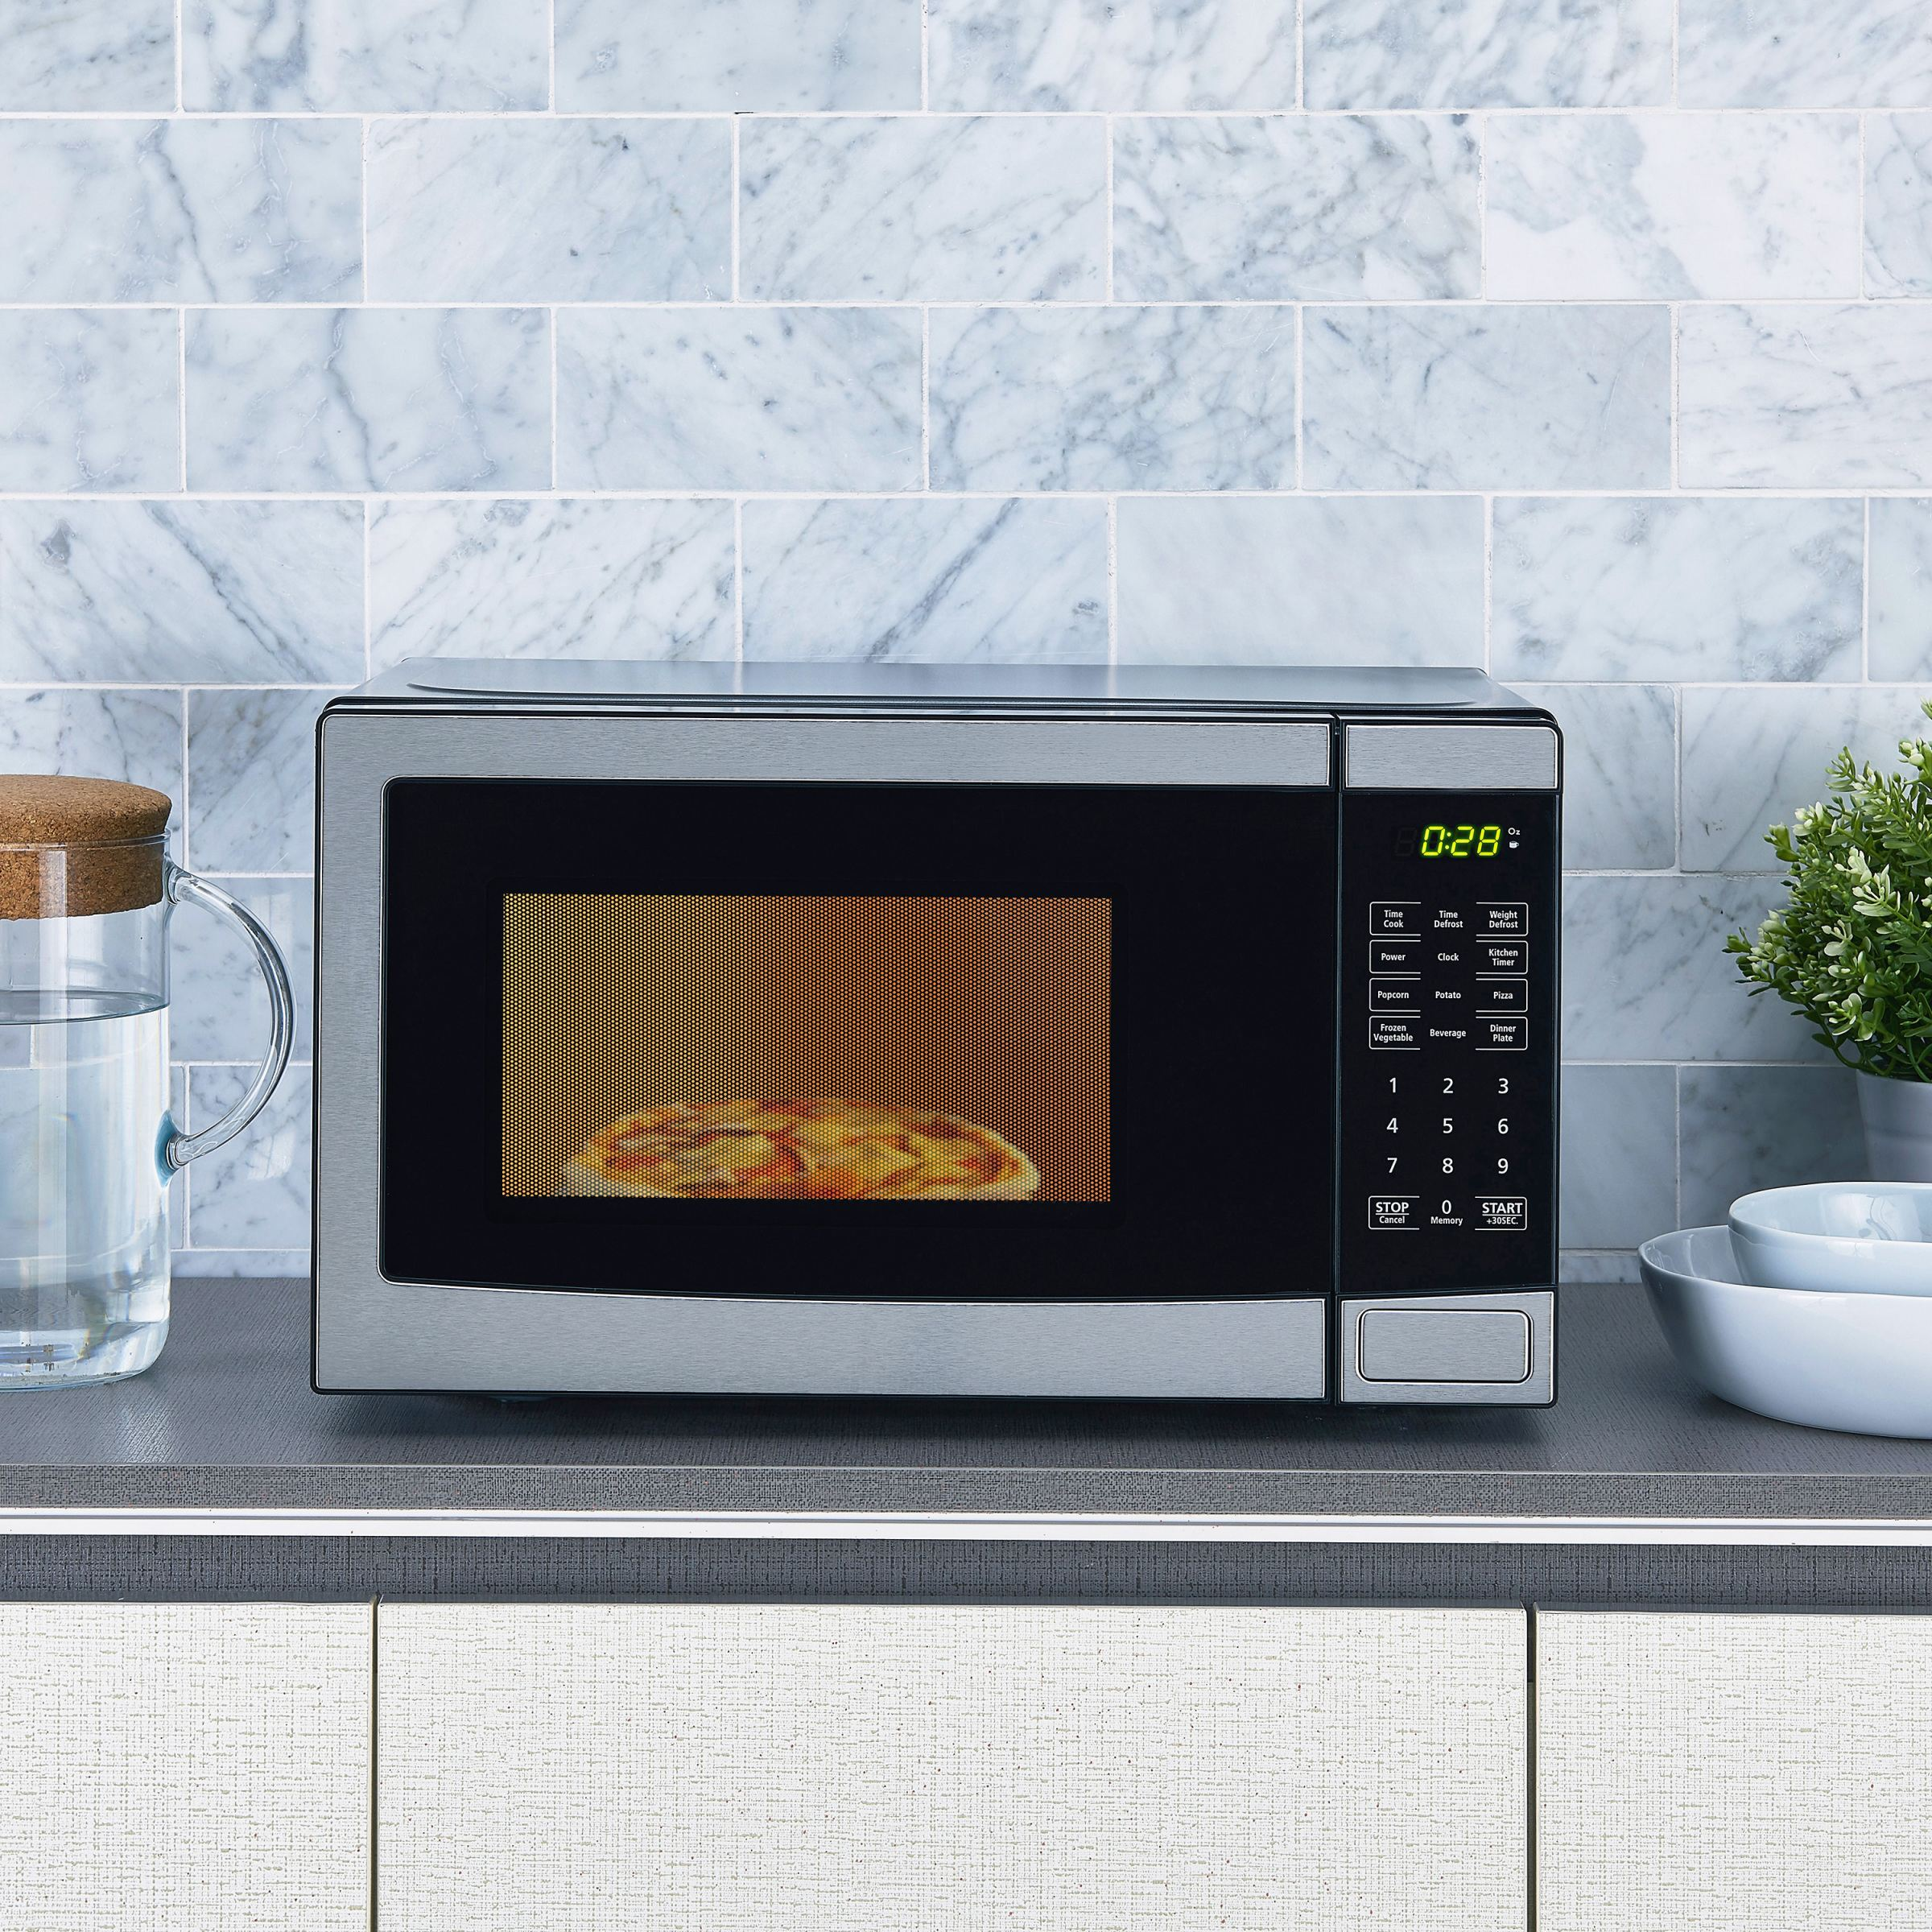 700 Watt Microwave Stainless Steel With 10 Levels